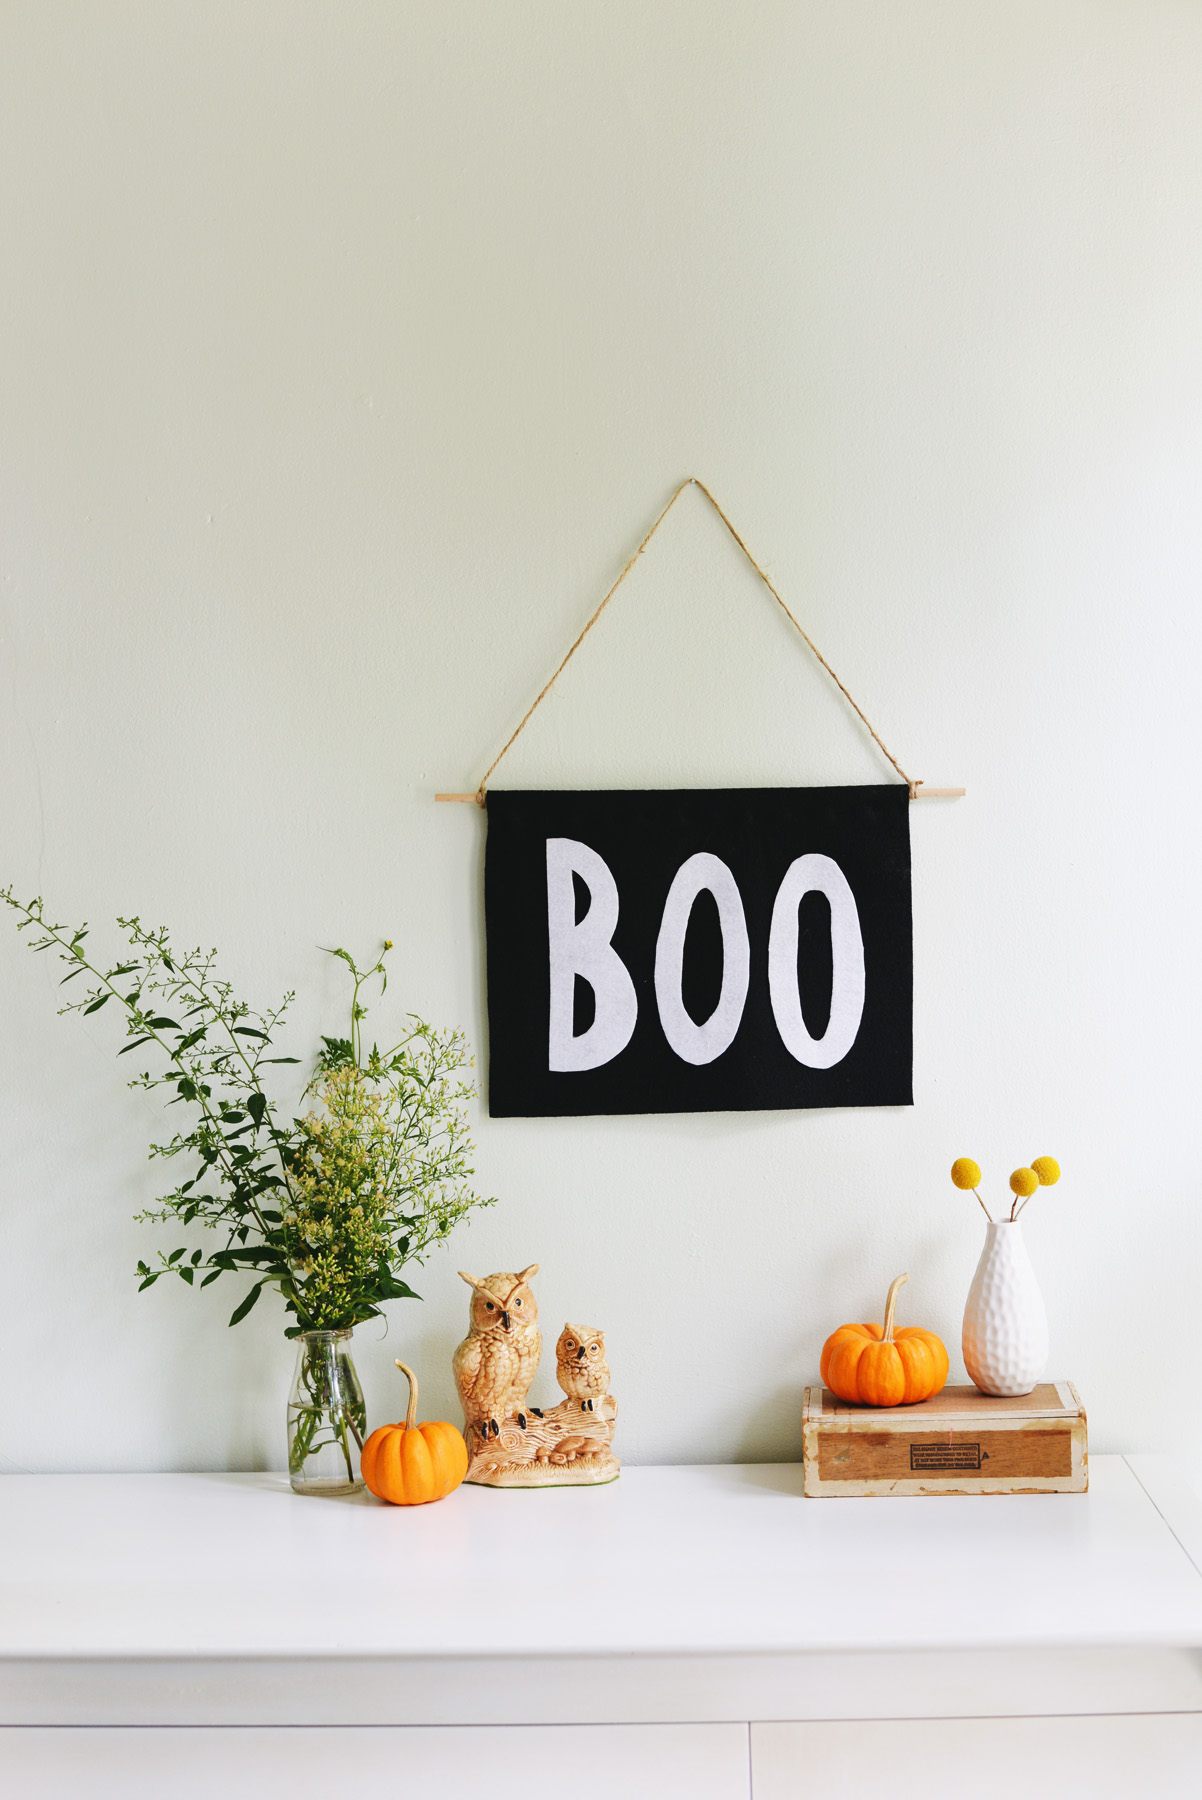 8 Simple steps are all it takes to make this Halloween 'BOO' banner